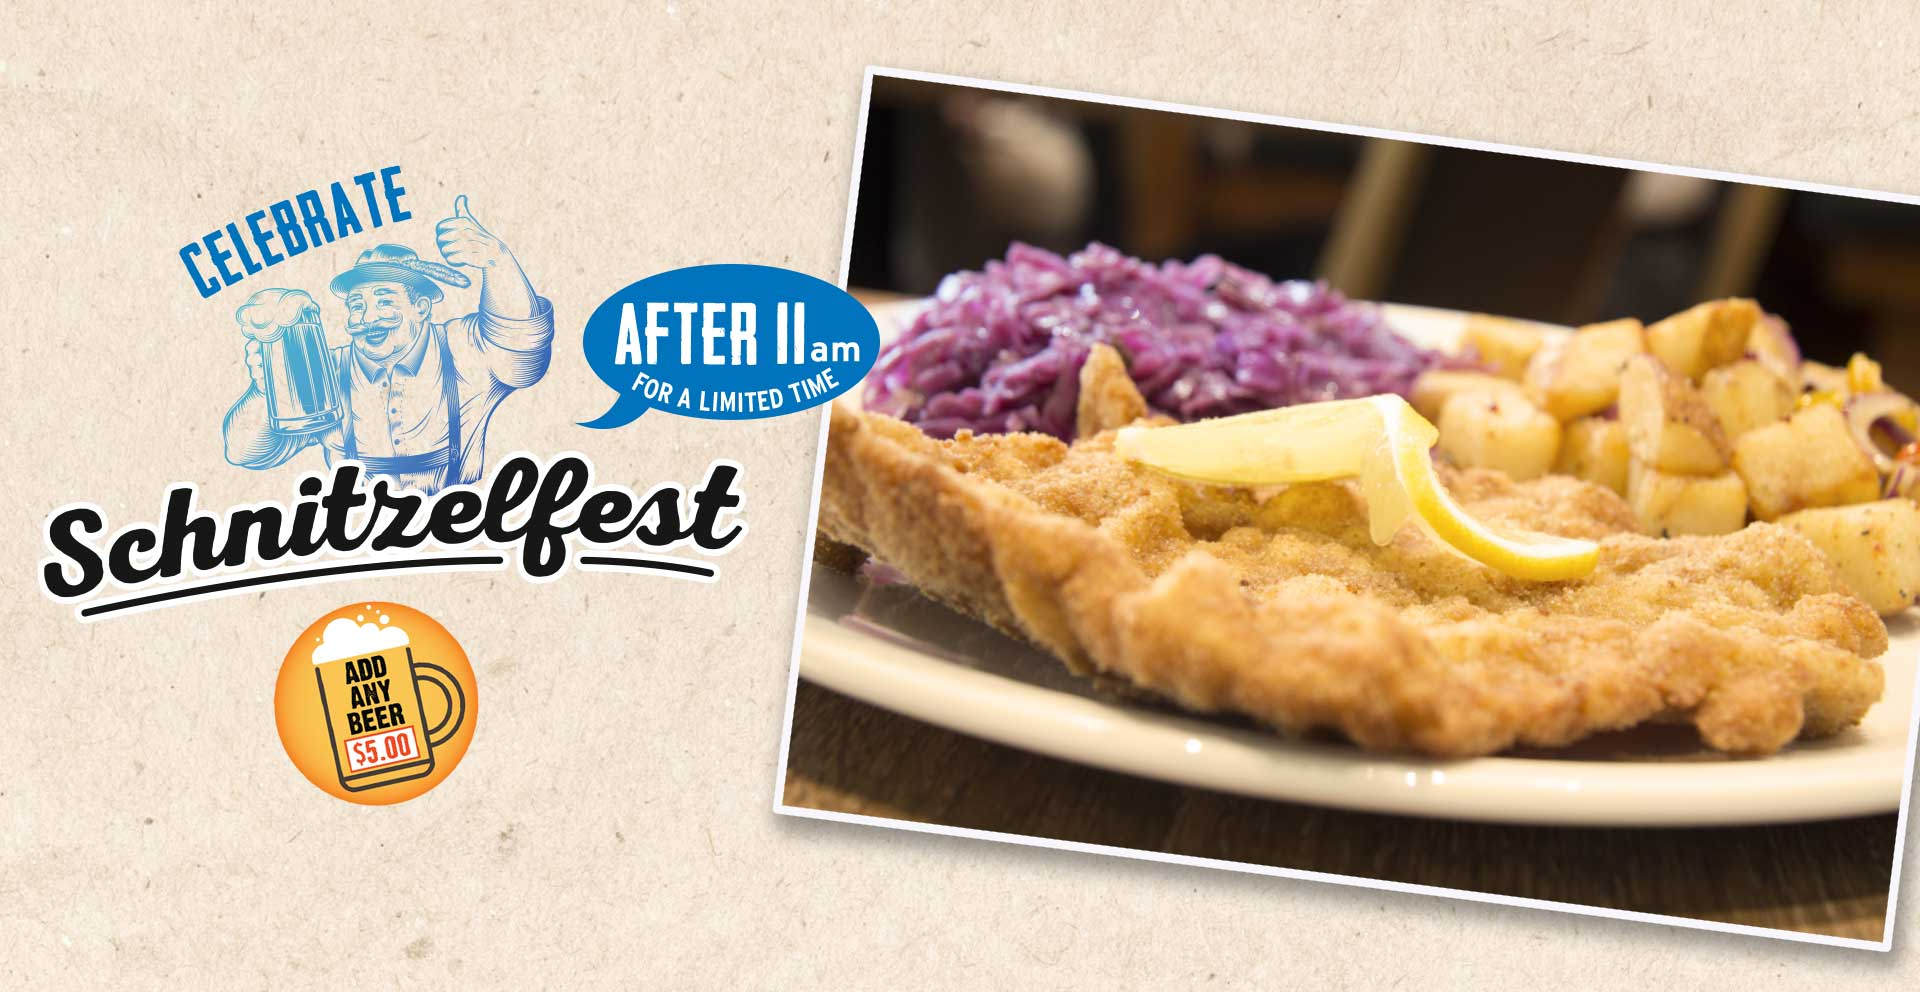 Choose from Wiener, Hunter or Neptune Schnitzel. For a limited time at participating locations.